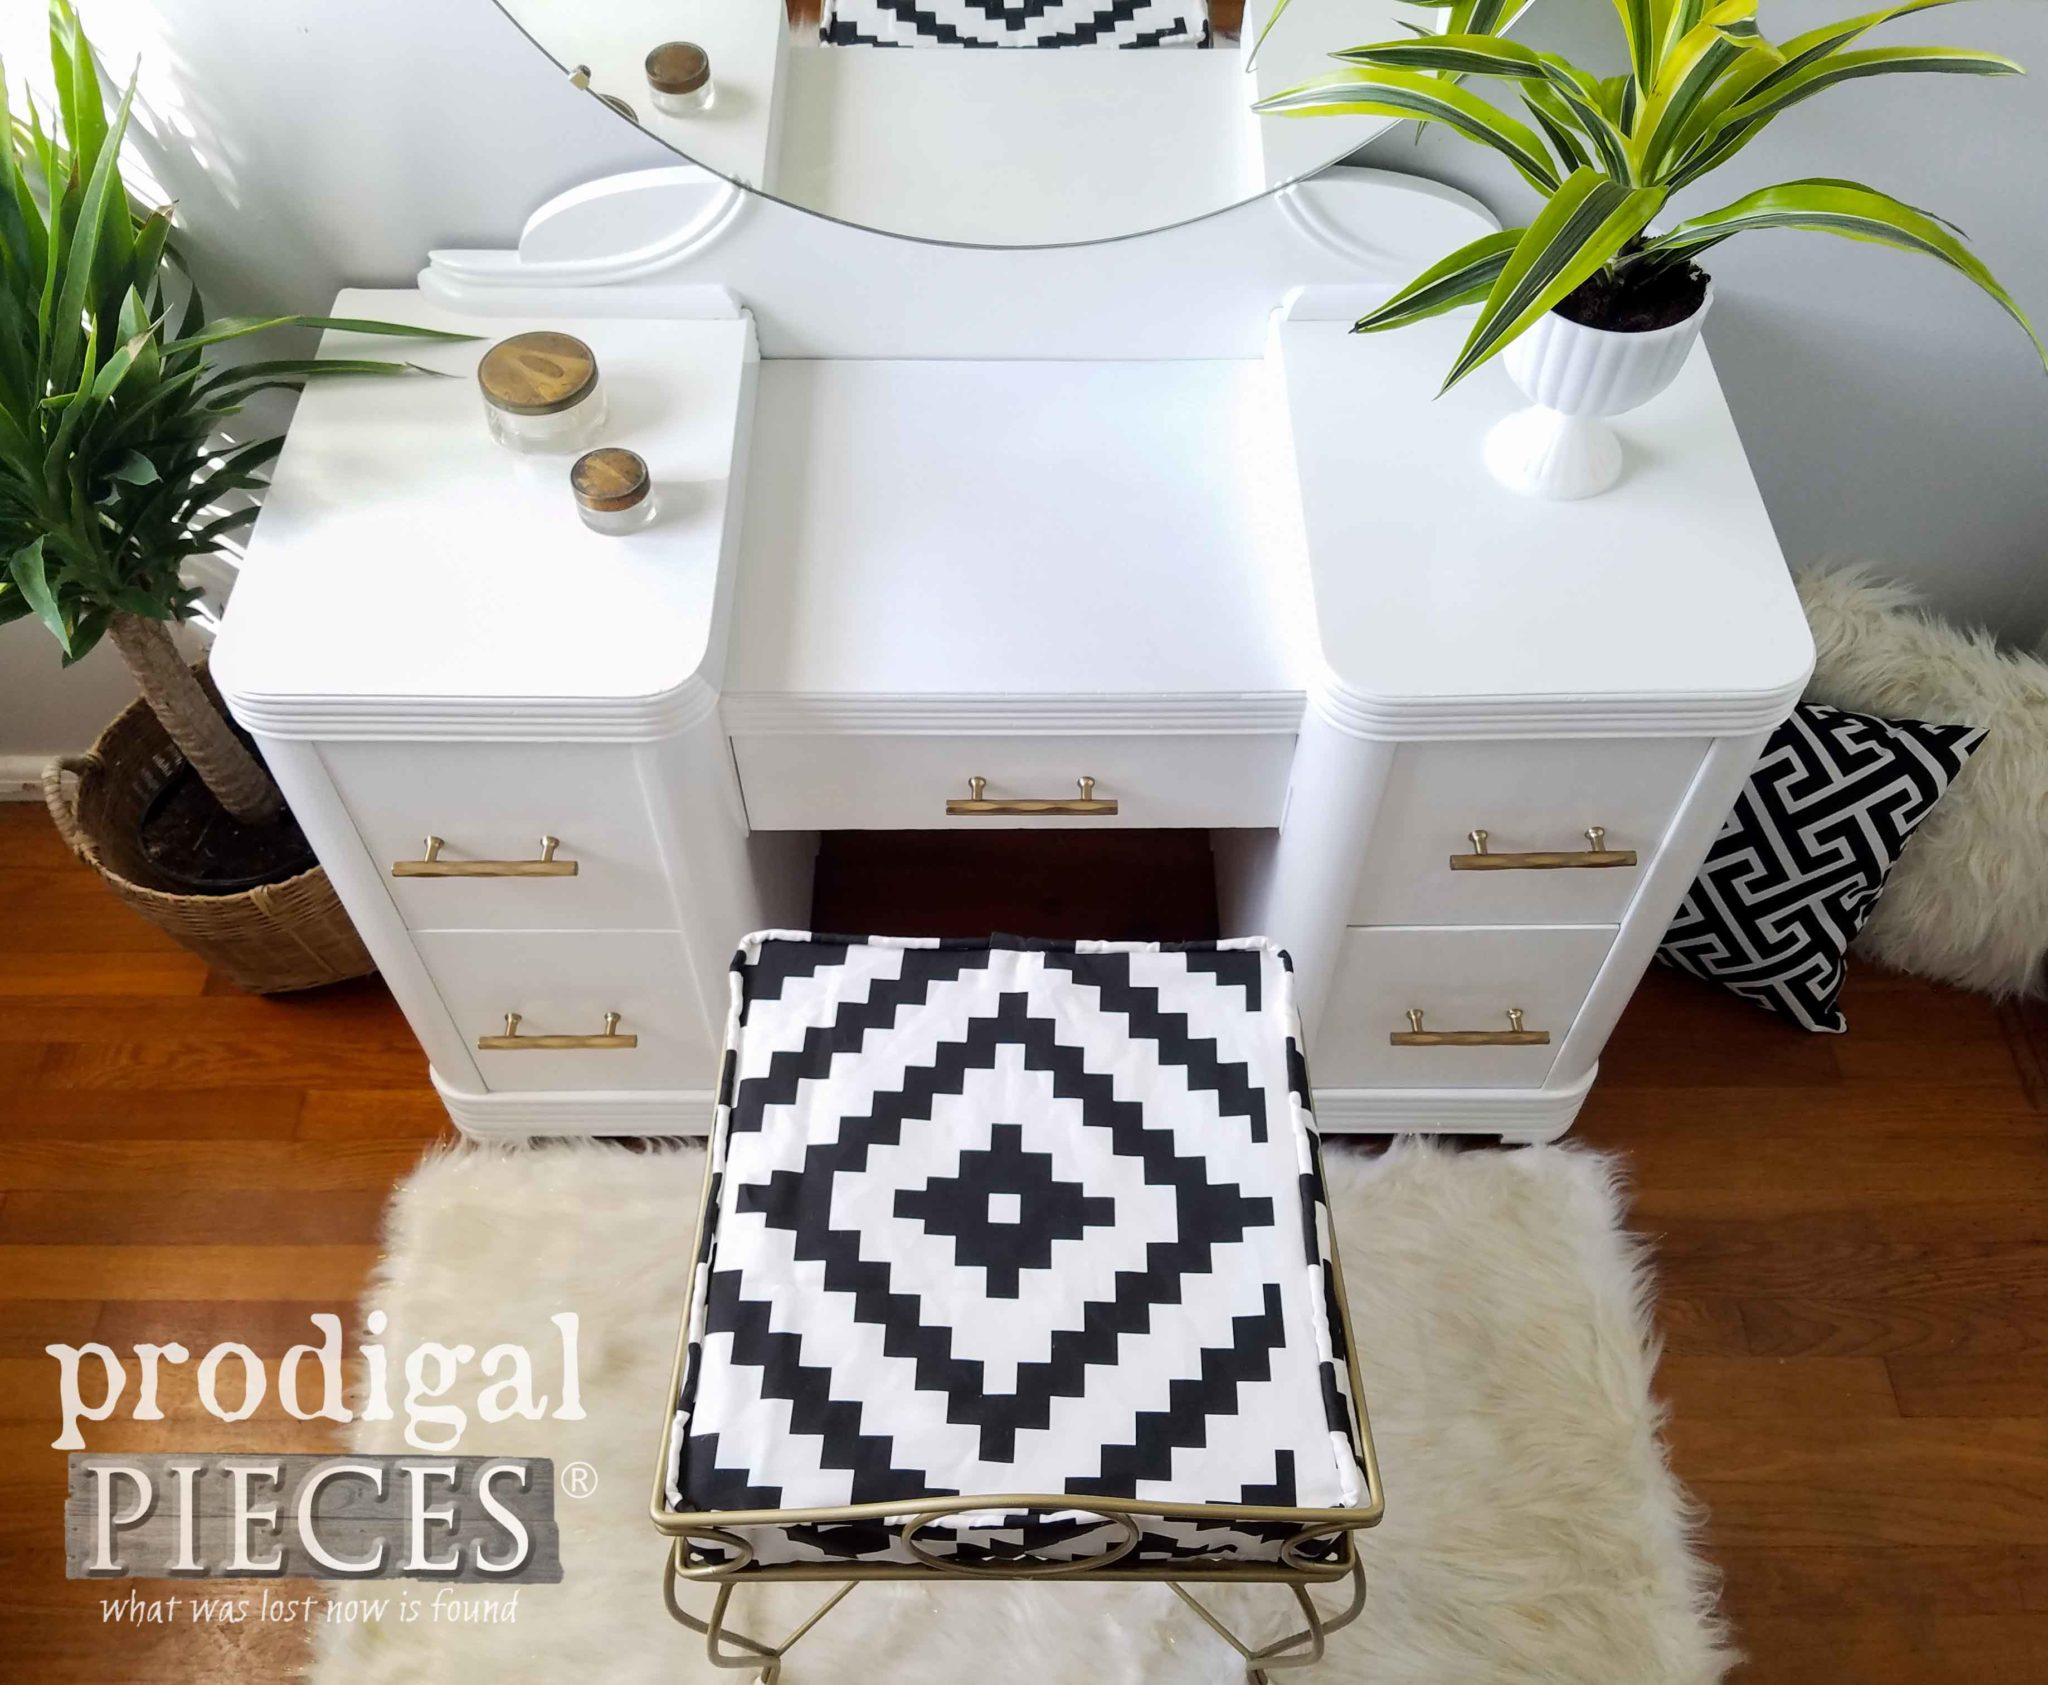 Gorgeous Vintage Art Deco Vanity Restored with Boho Chic Style by Larissa of Prodigal Pieces | prodigalpieces.com